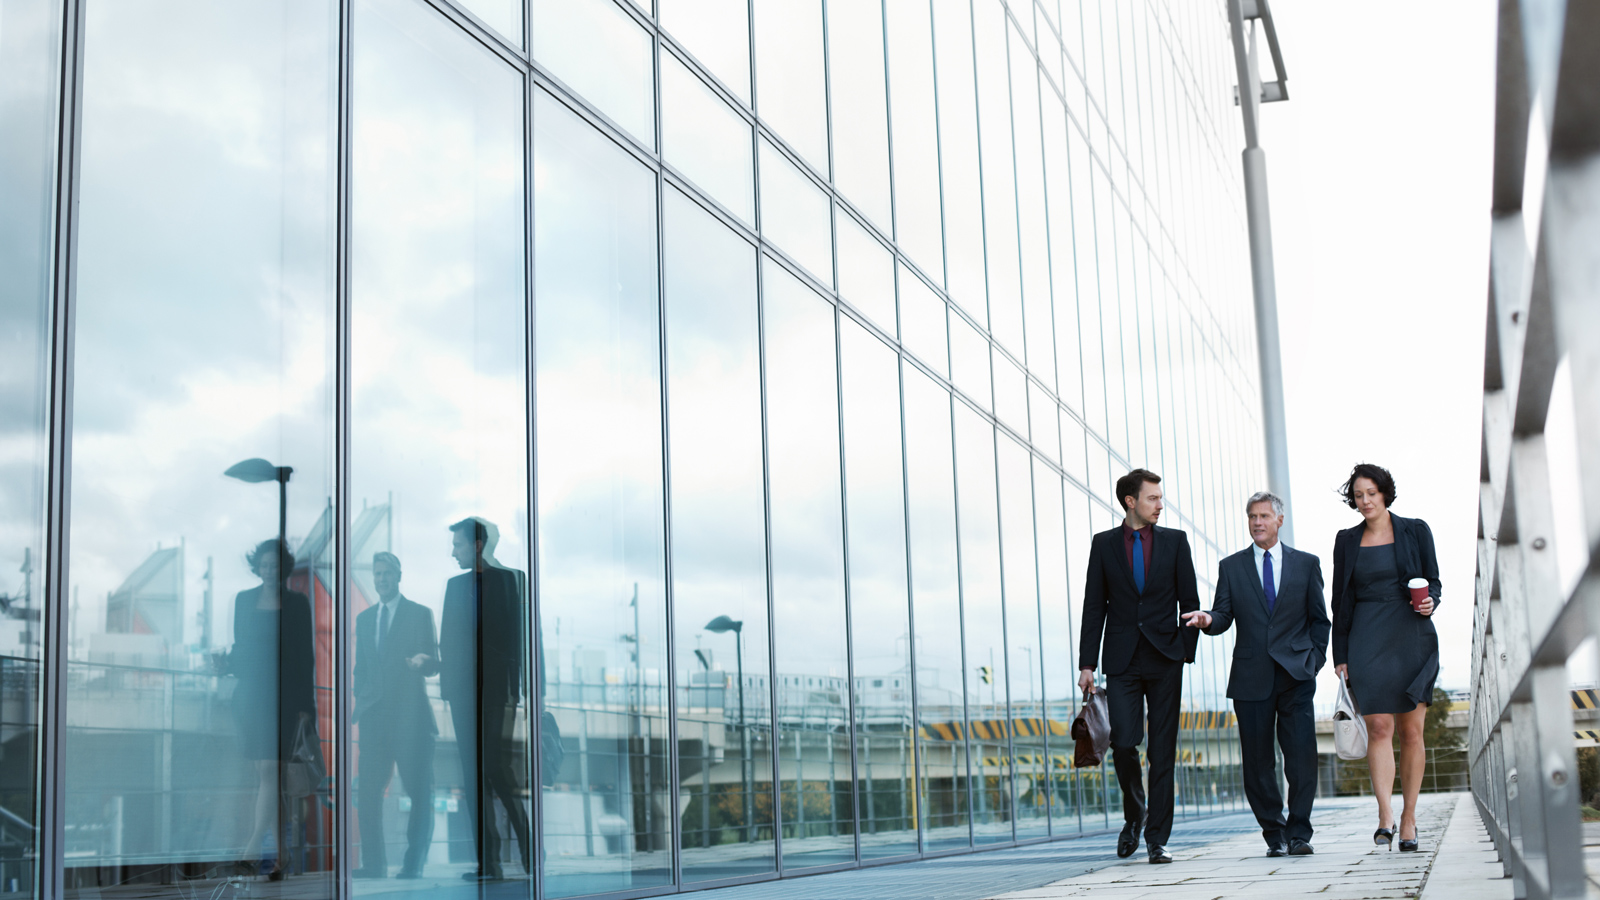 3 executive people walking together by the side of a build having glass walls.